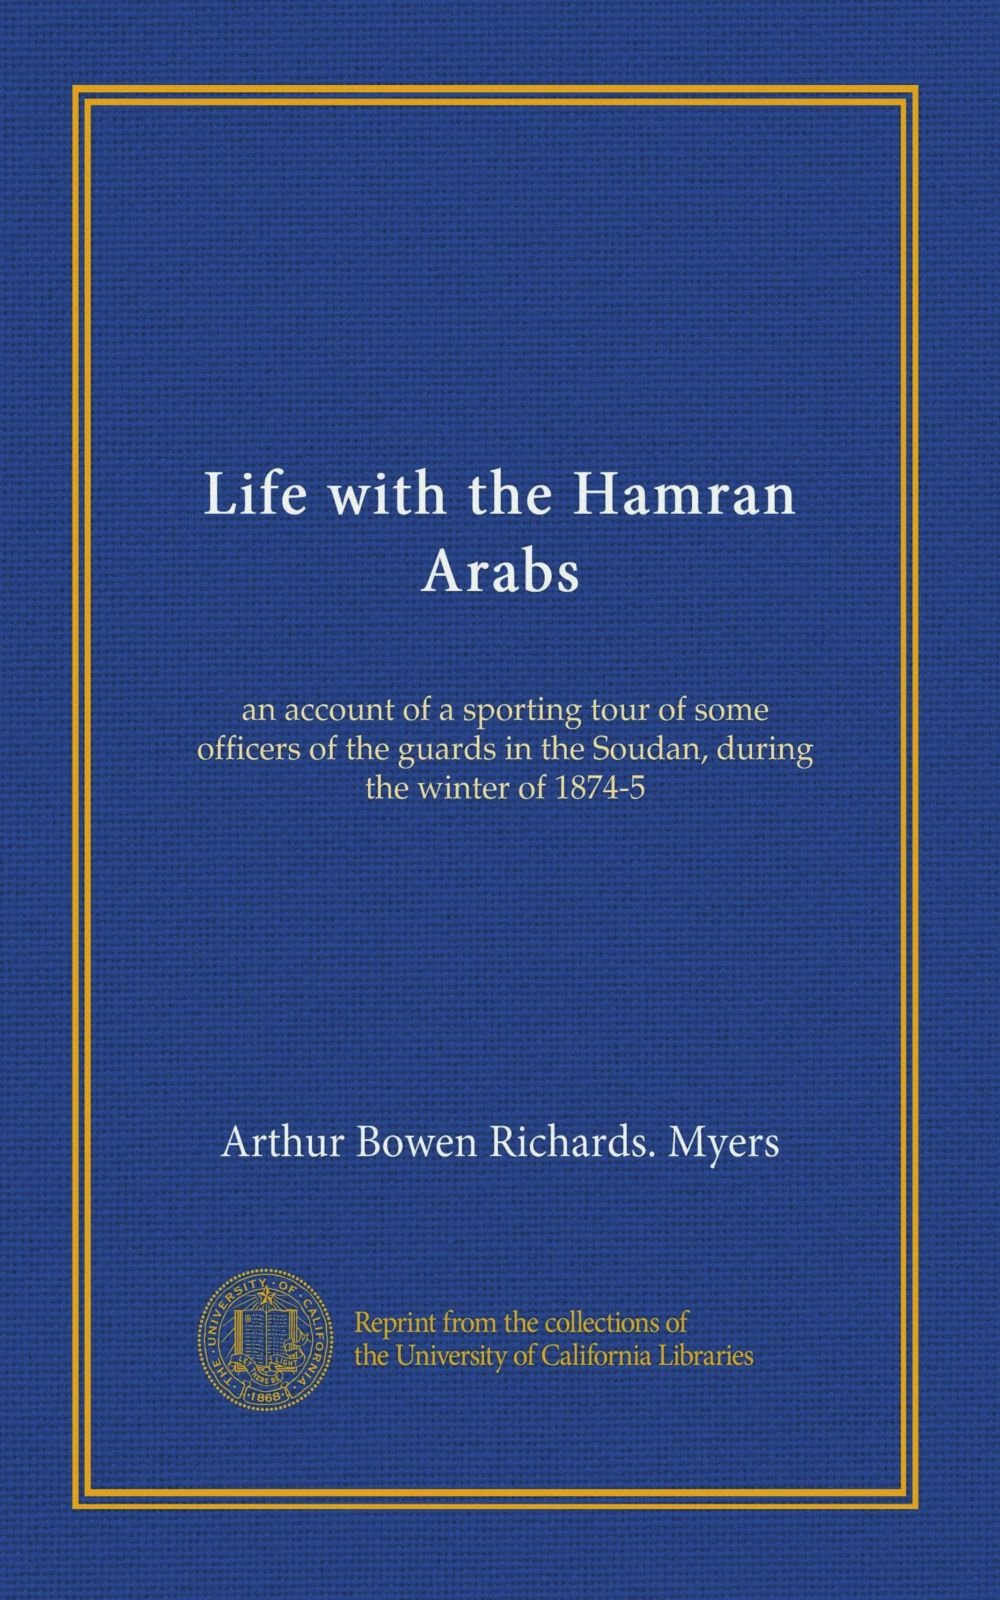 Life with the Hamran Arabs: an account of a sporting tour of some officers of the guards in the Soudan, during the winter of 1874-5 pdf epub